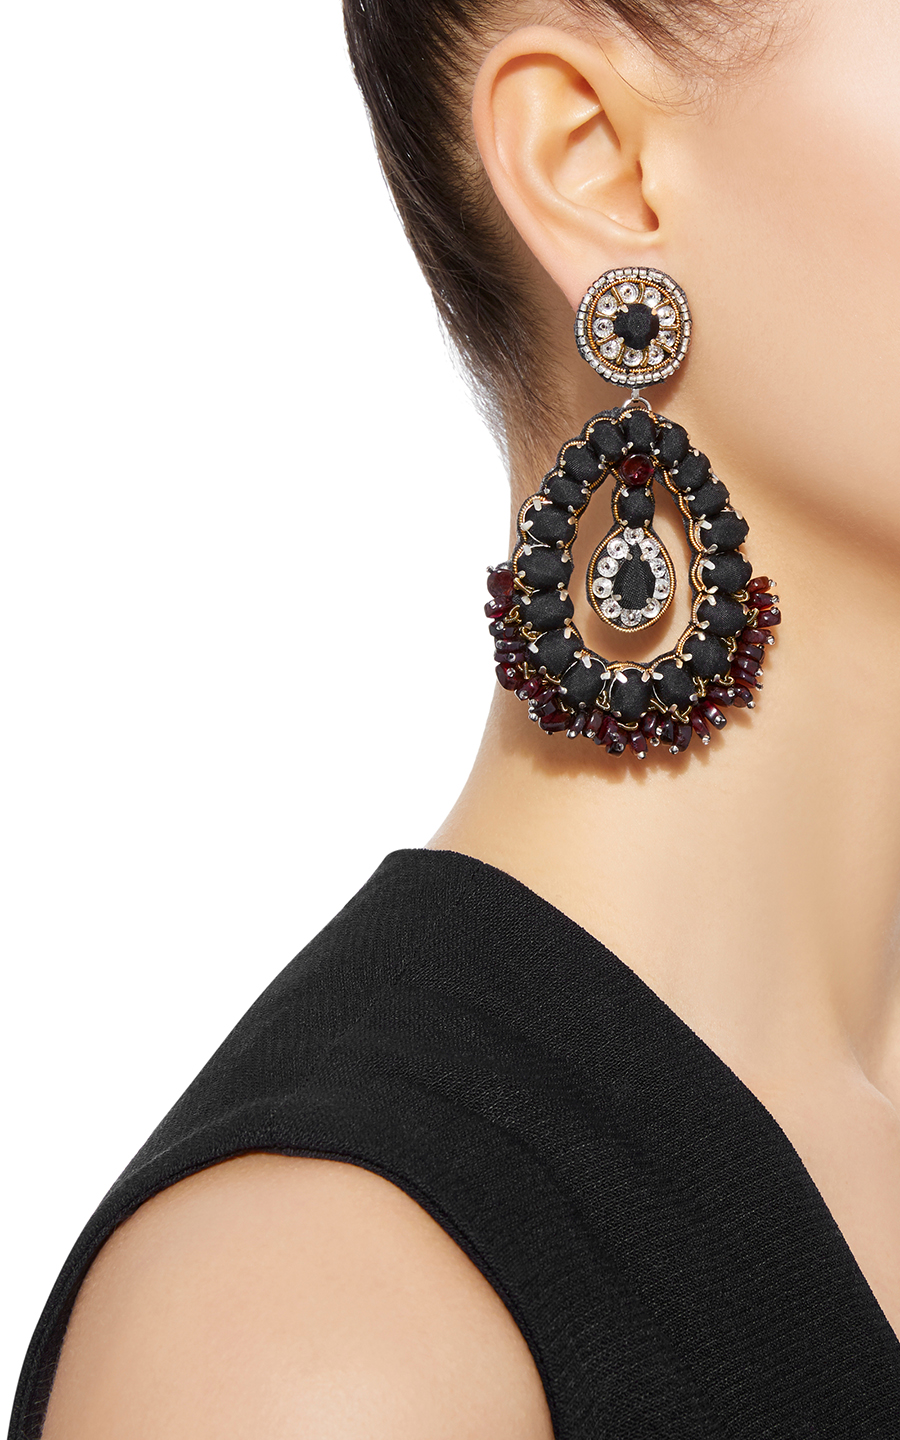 Black drop Ranjana Khan earrings stylish clip on earrings